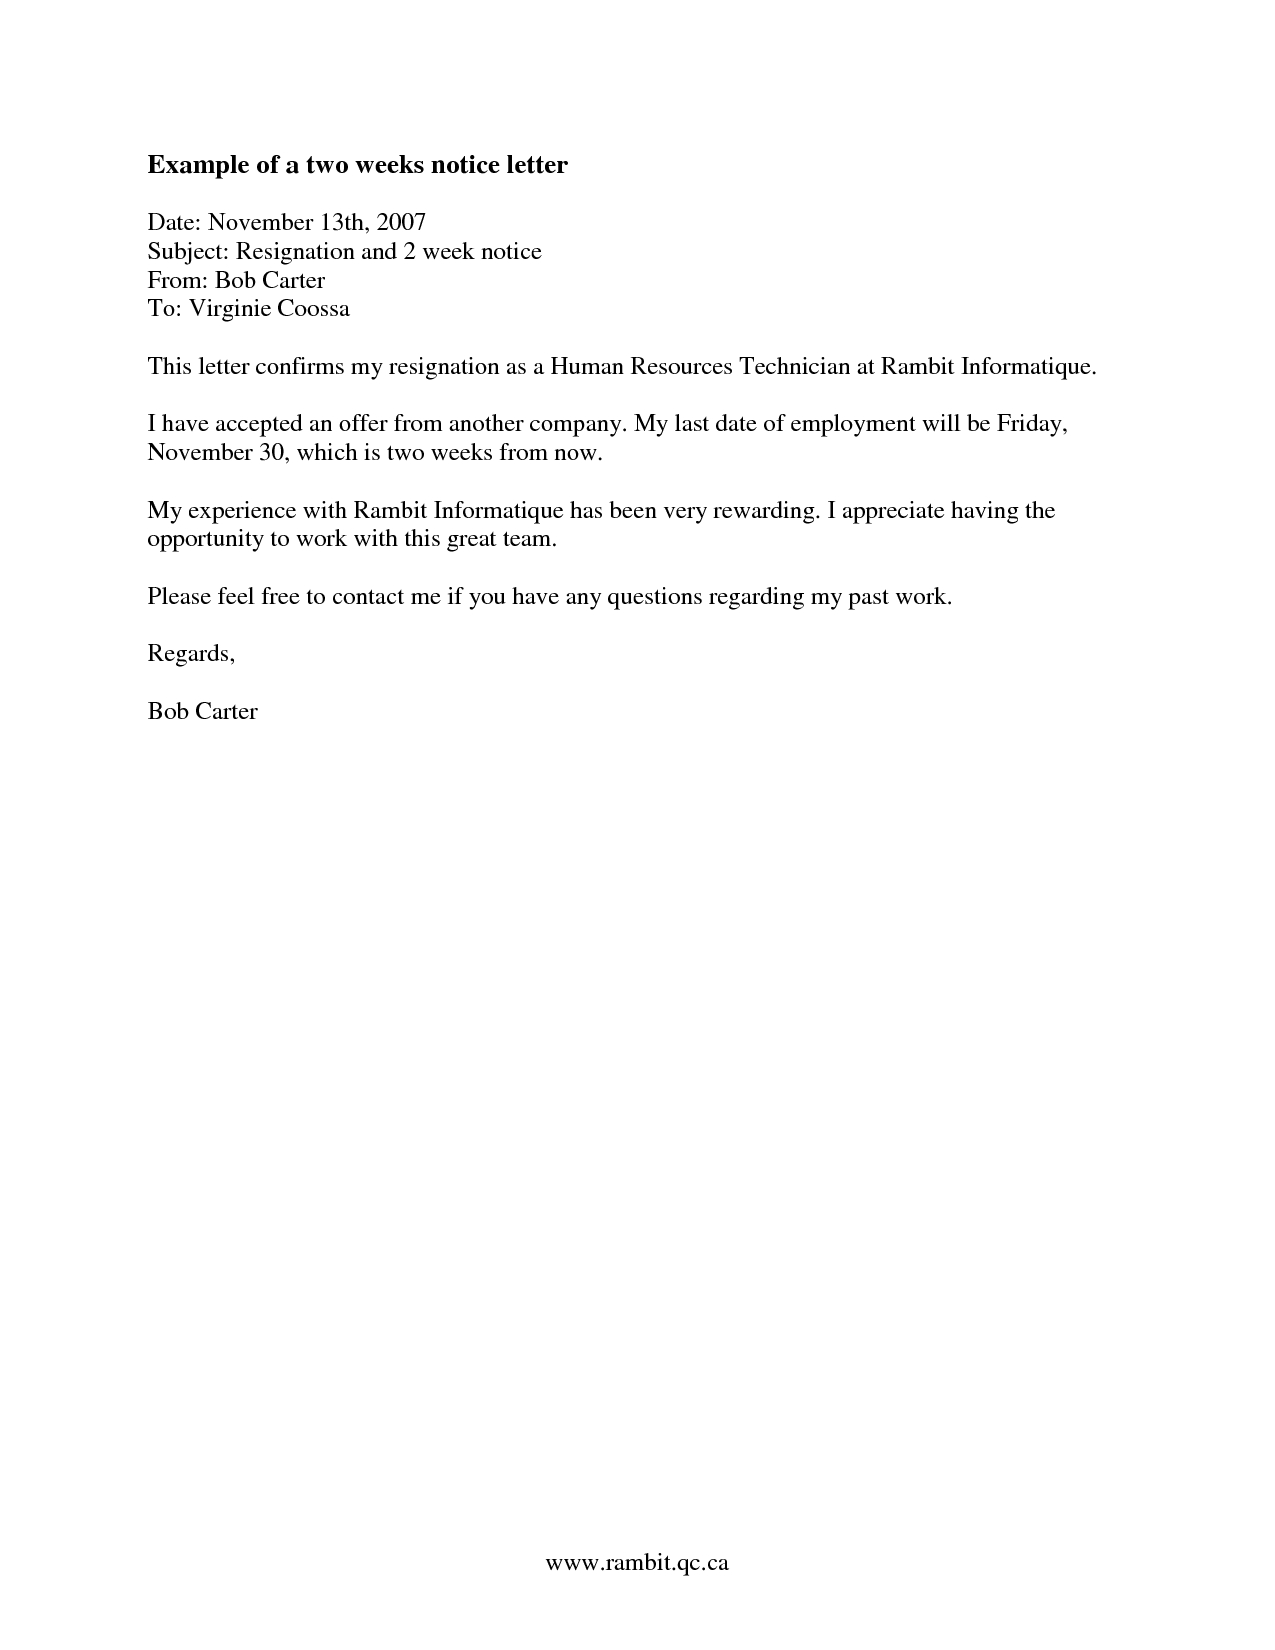 Letter Of Recommendation Template for Coworker - How to Find Examples Of Two Week Notice Recipes